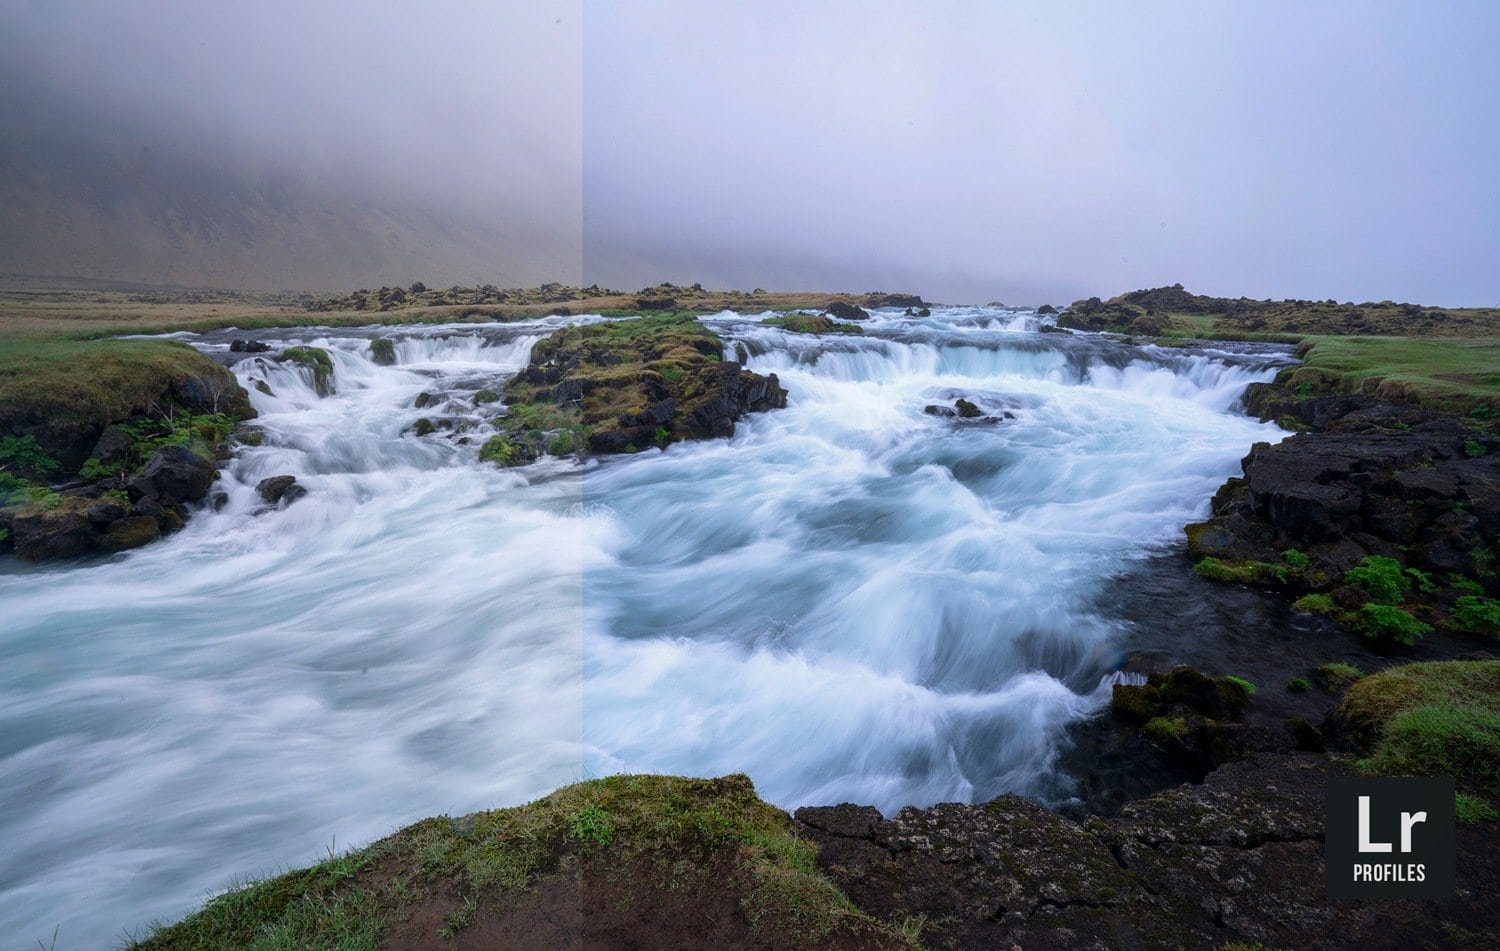 Free-Lightroom-Profile-Lush-Land-Before-After-Presetpro.com